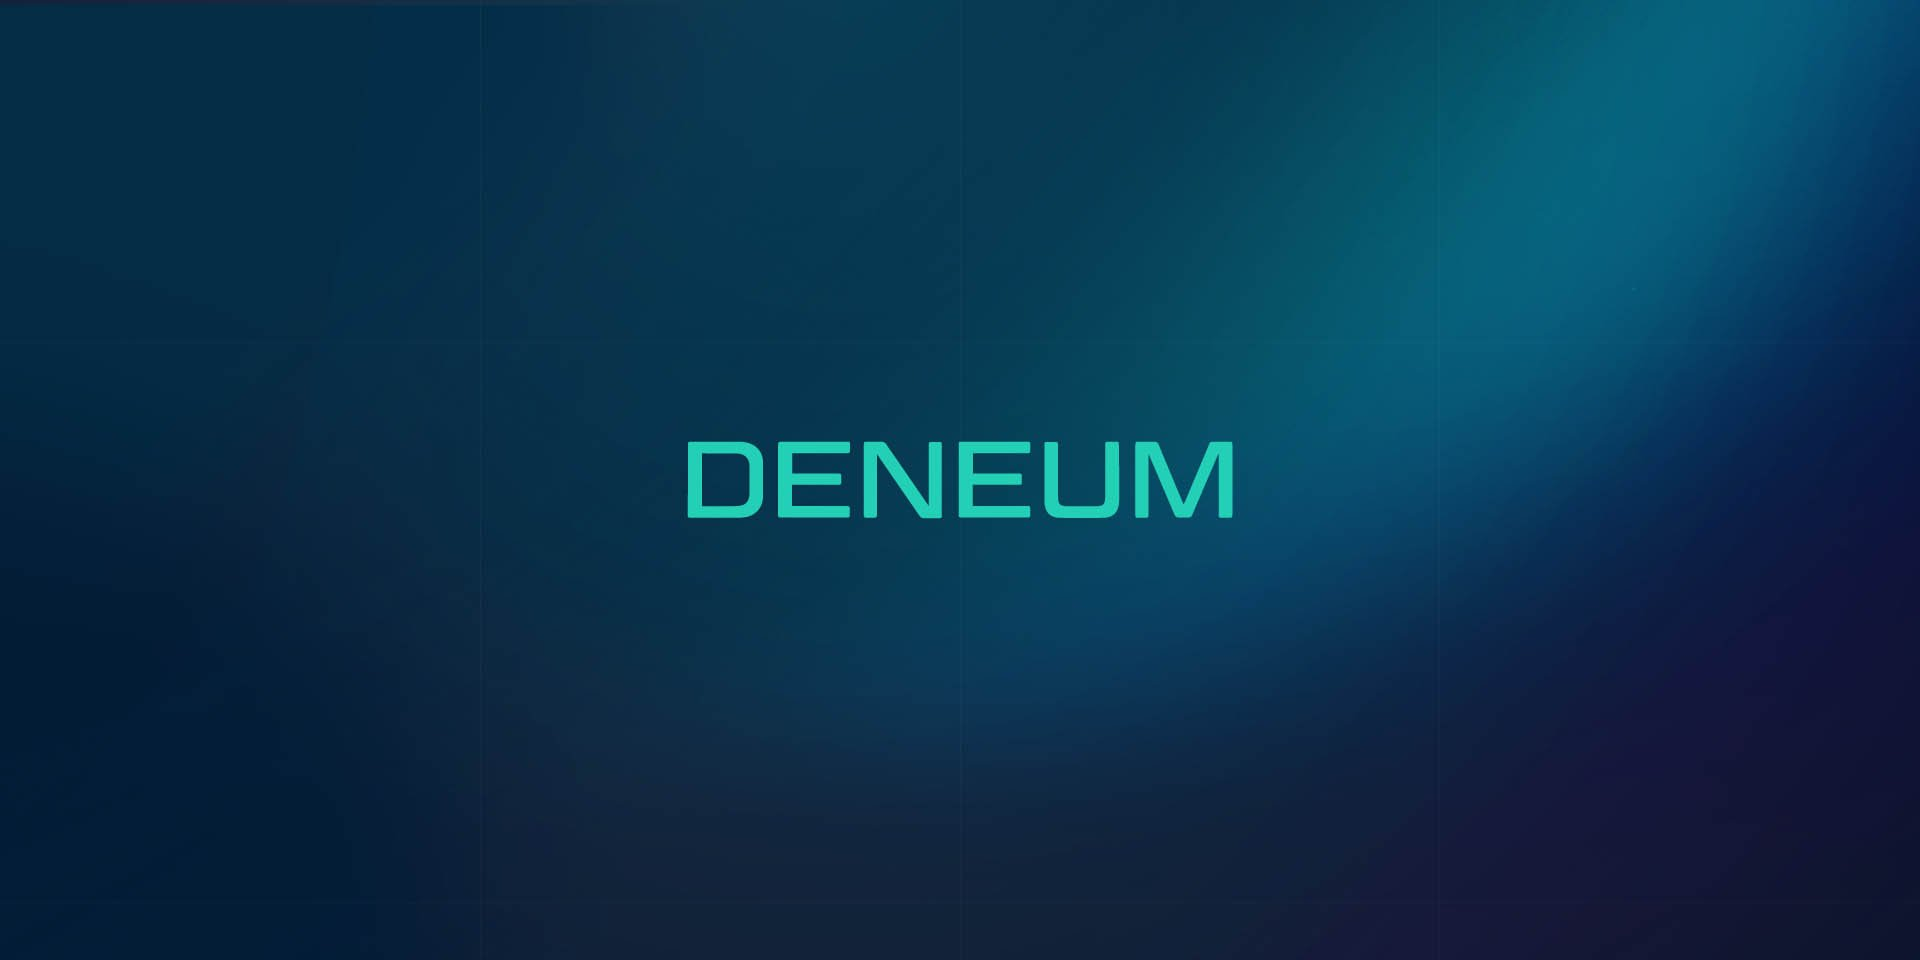 Titanium + Deuterium, Shaken, Not Stirred: Deneum Reveals Its Power Station to Revolutionize Global Energy Market, Gears up for $89M ICO